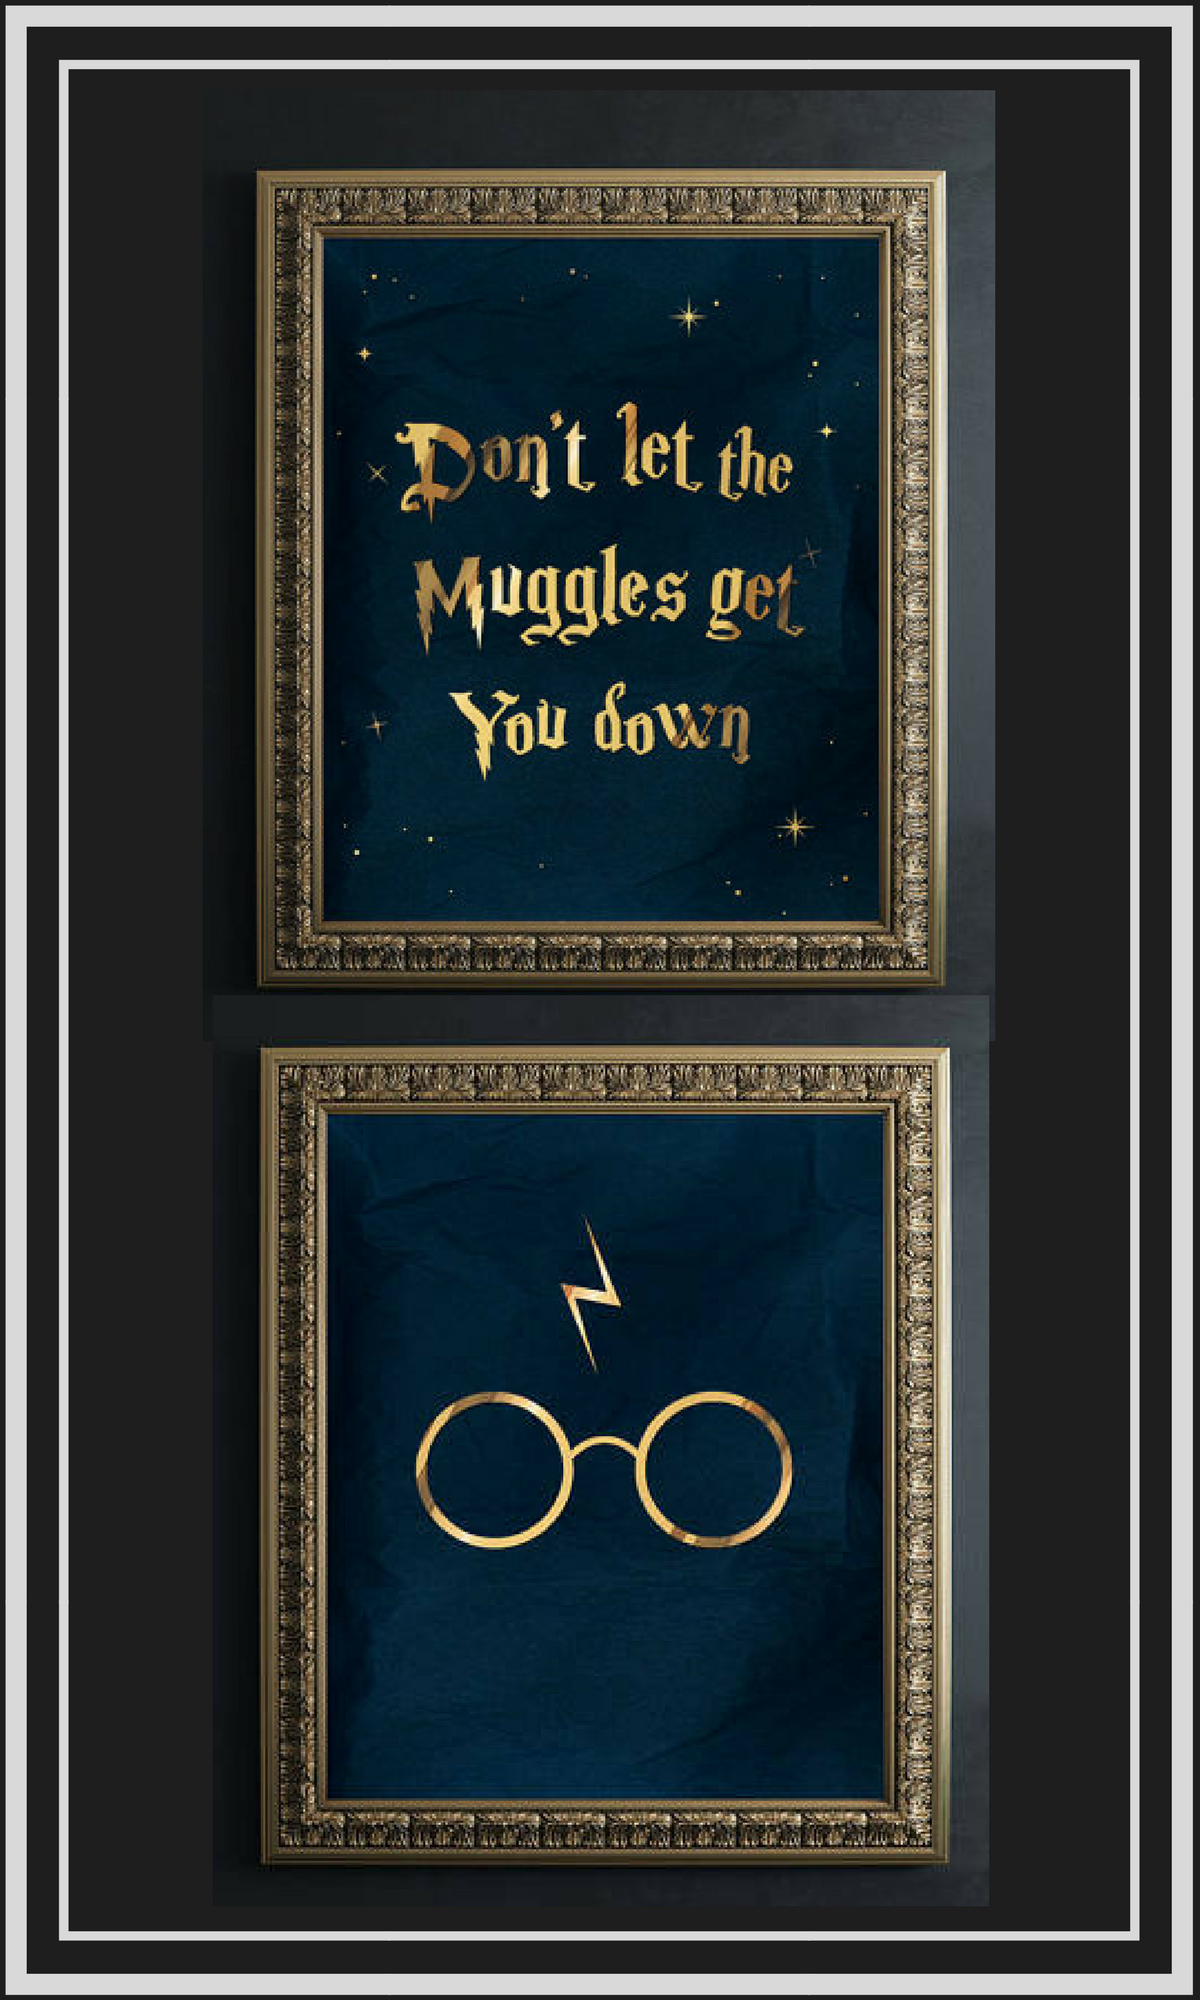 Harry potter wall art donut let the muggles get you down harry